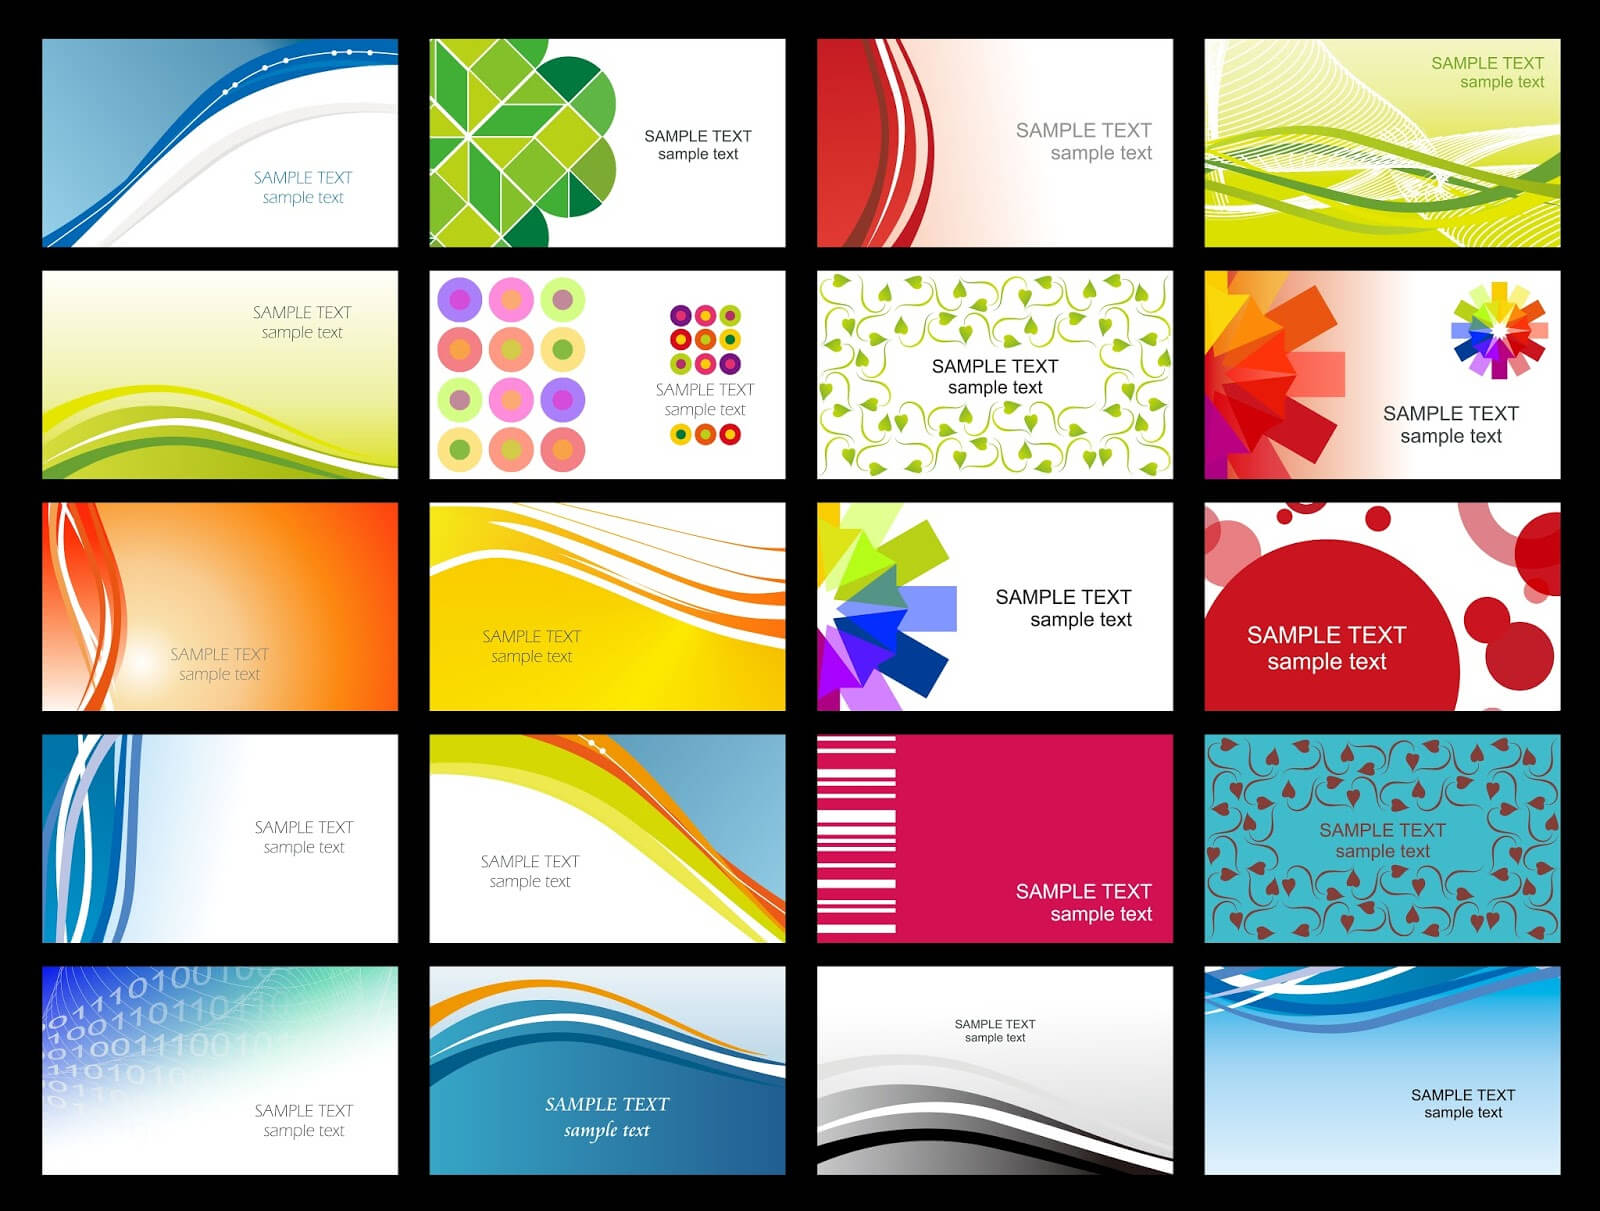 Printable Business Card Template - Business Card Tips With Regard To Templates For Visiting Cards Free Downloads